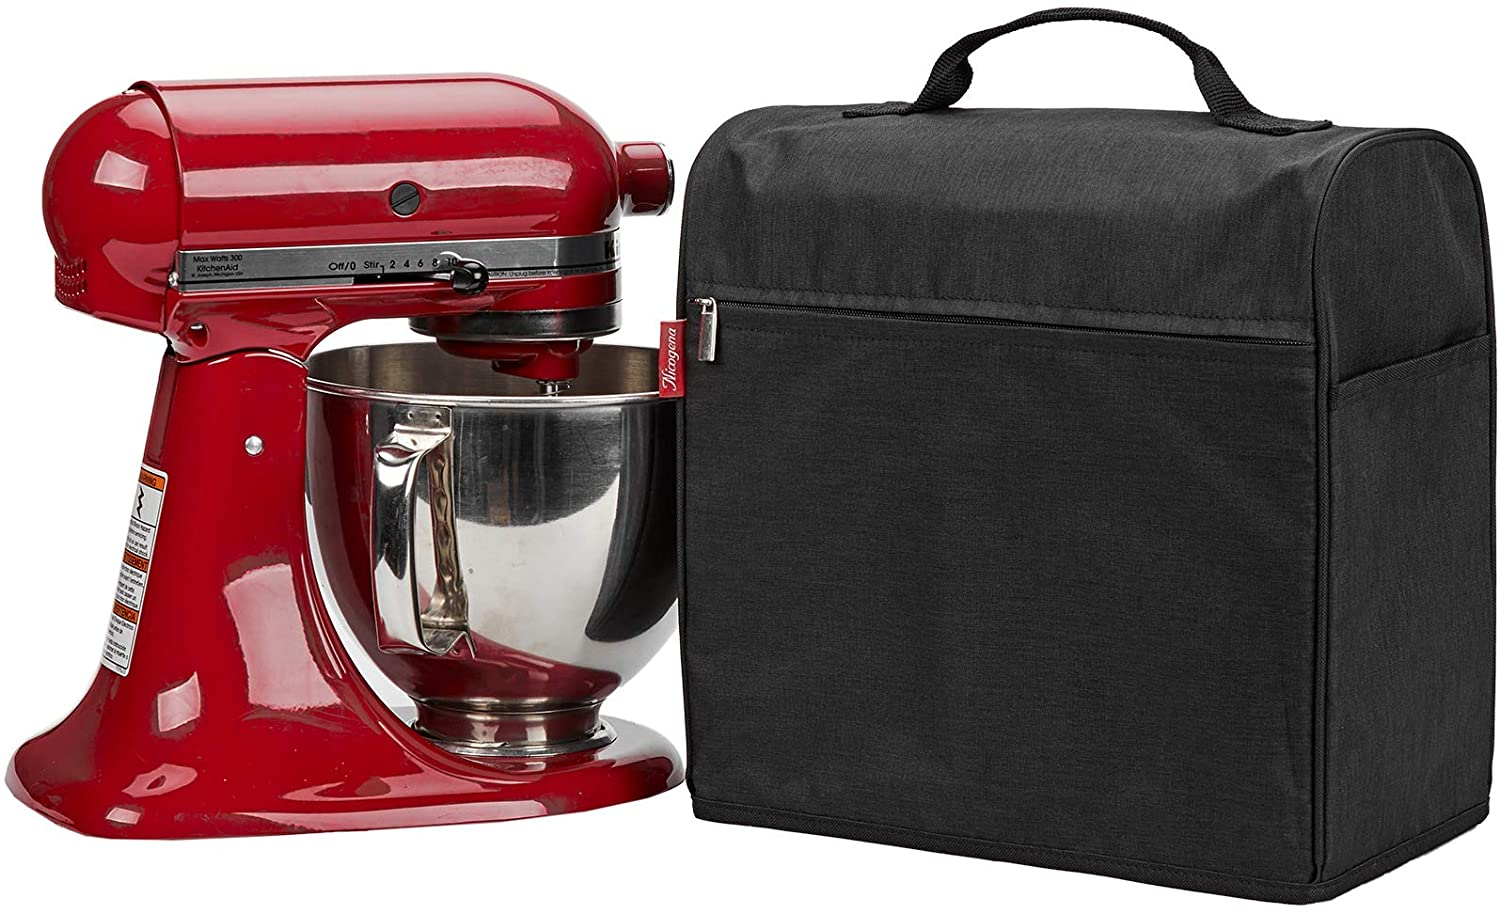 NICOGENA Stand Mixer Cover Compatible with KitchenAid Tilt Head 4.5-5 Quart, Dust Cover with Zipper Pocket for Accessories, Black